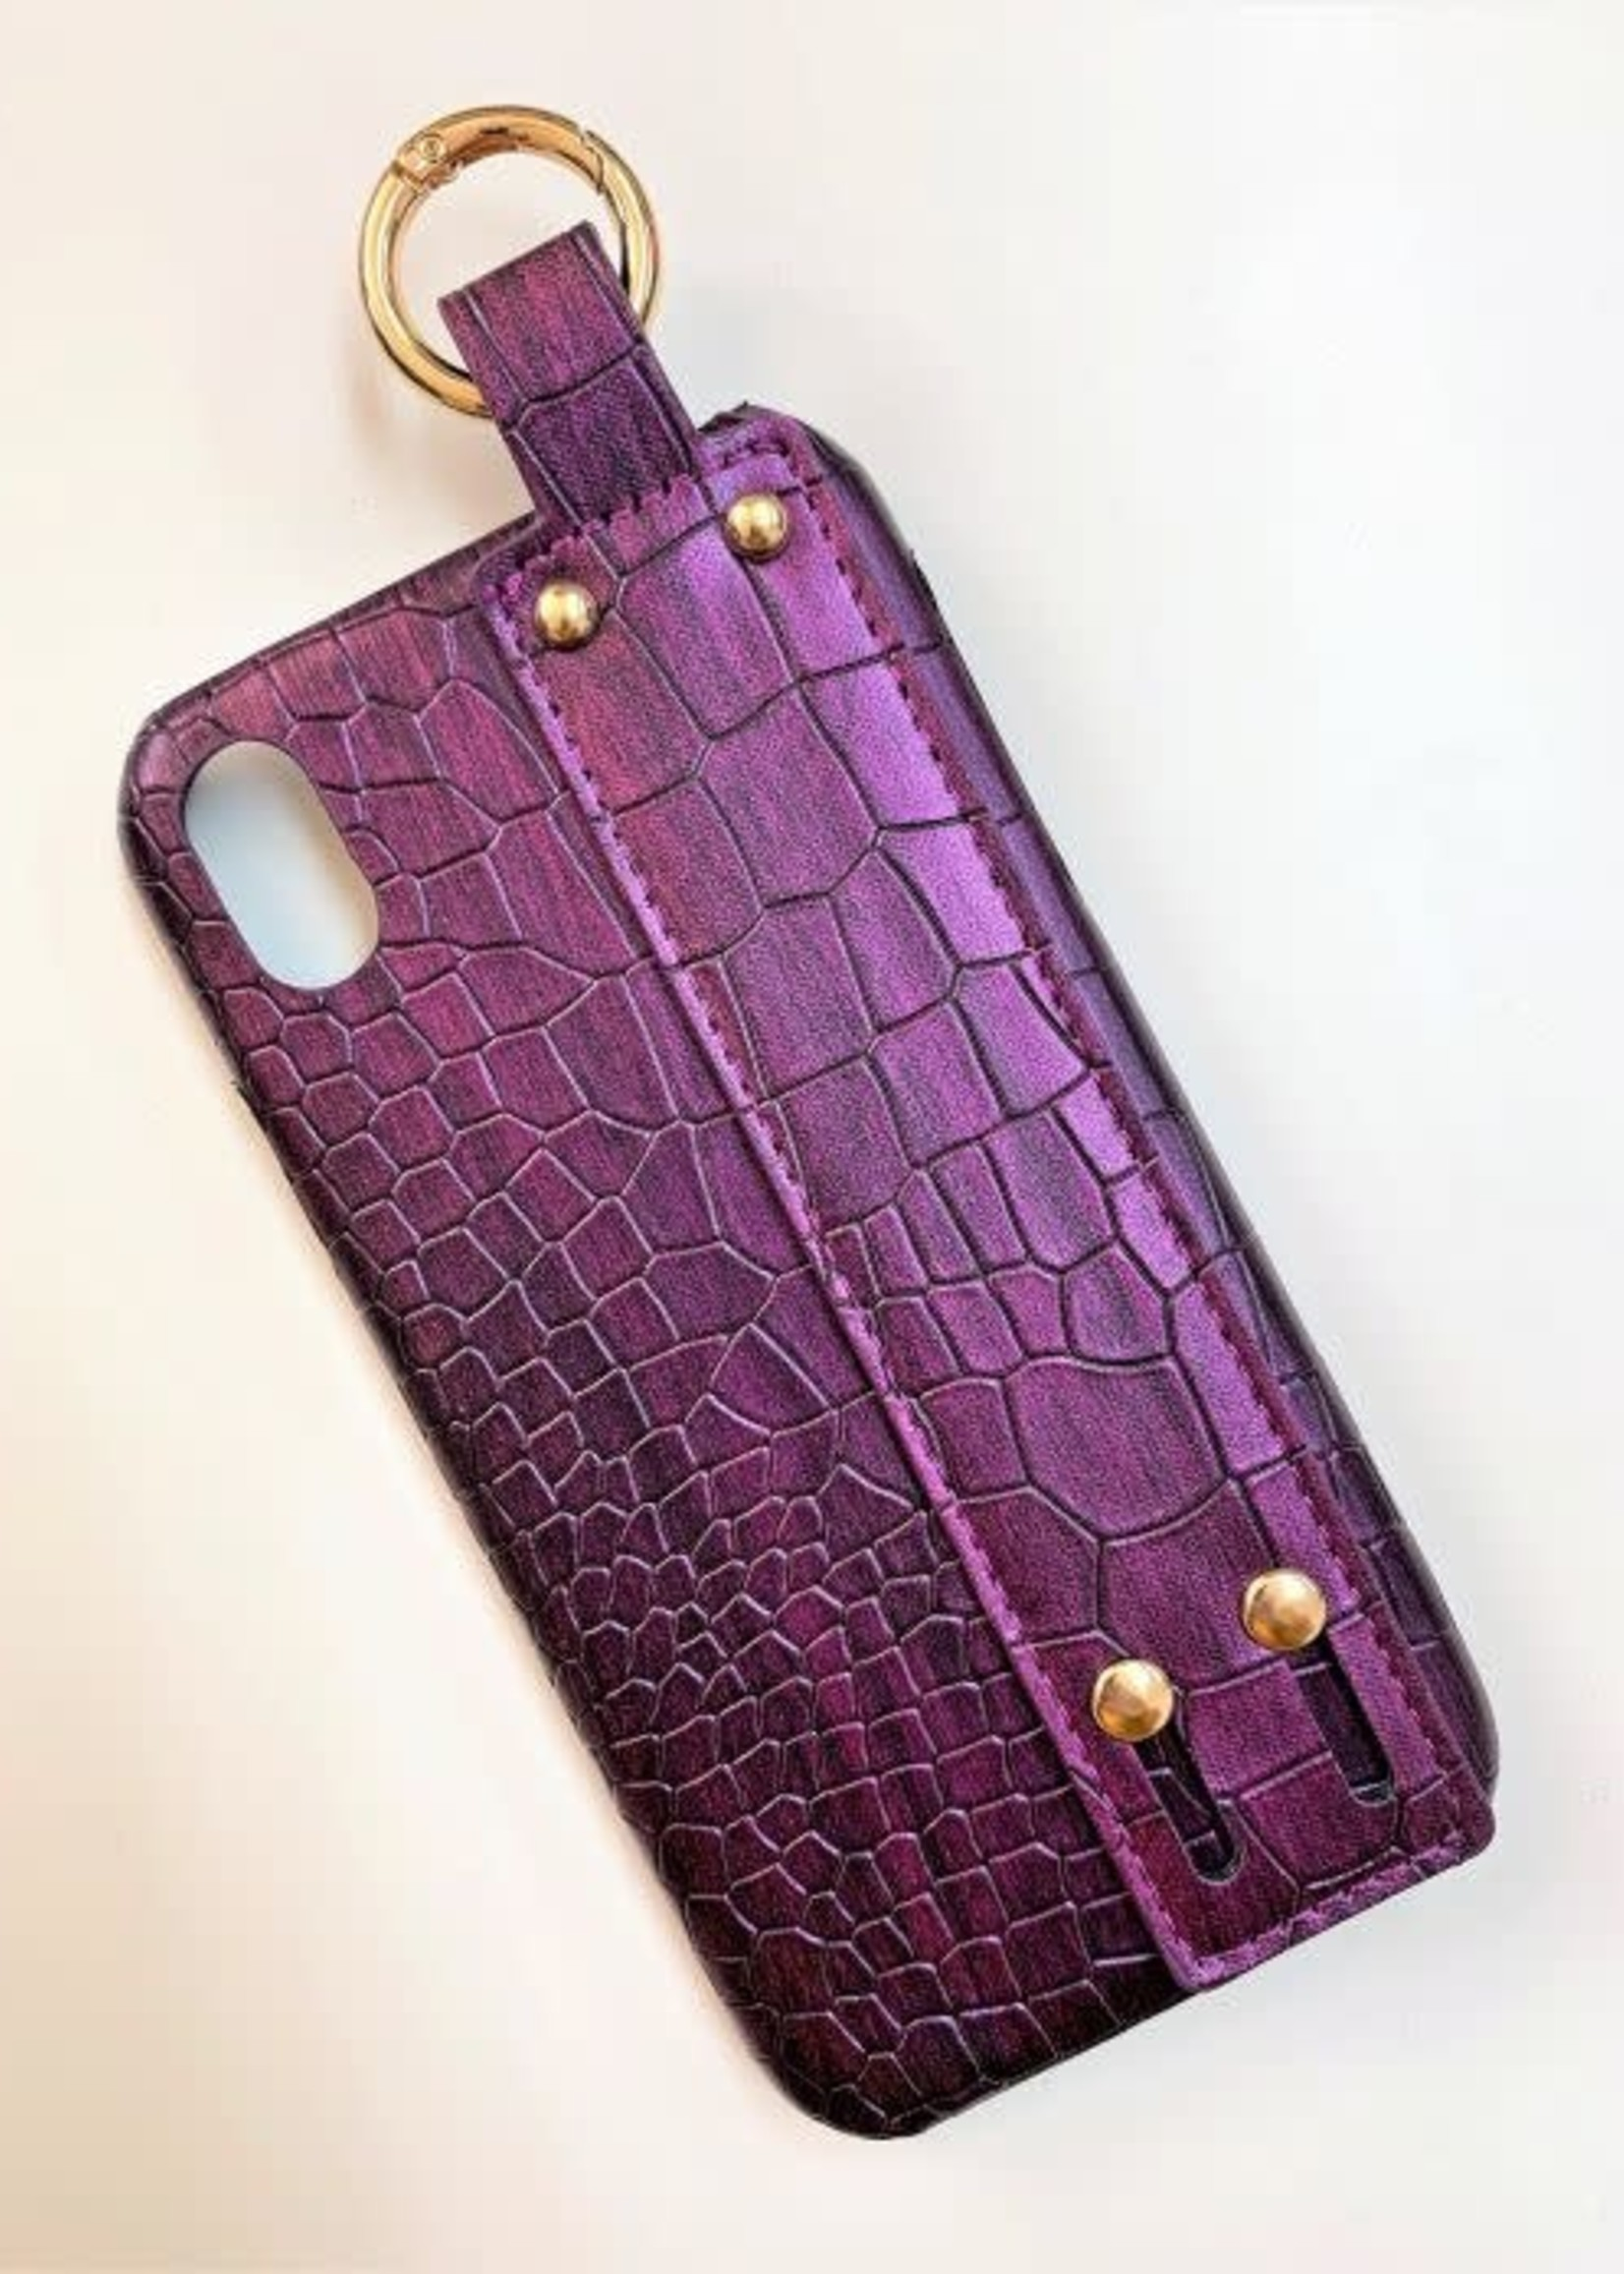 Gator With Handle Iphone Case